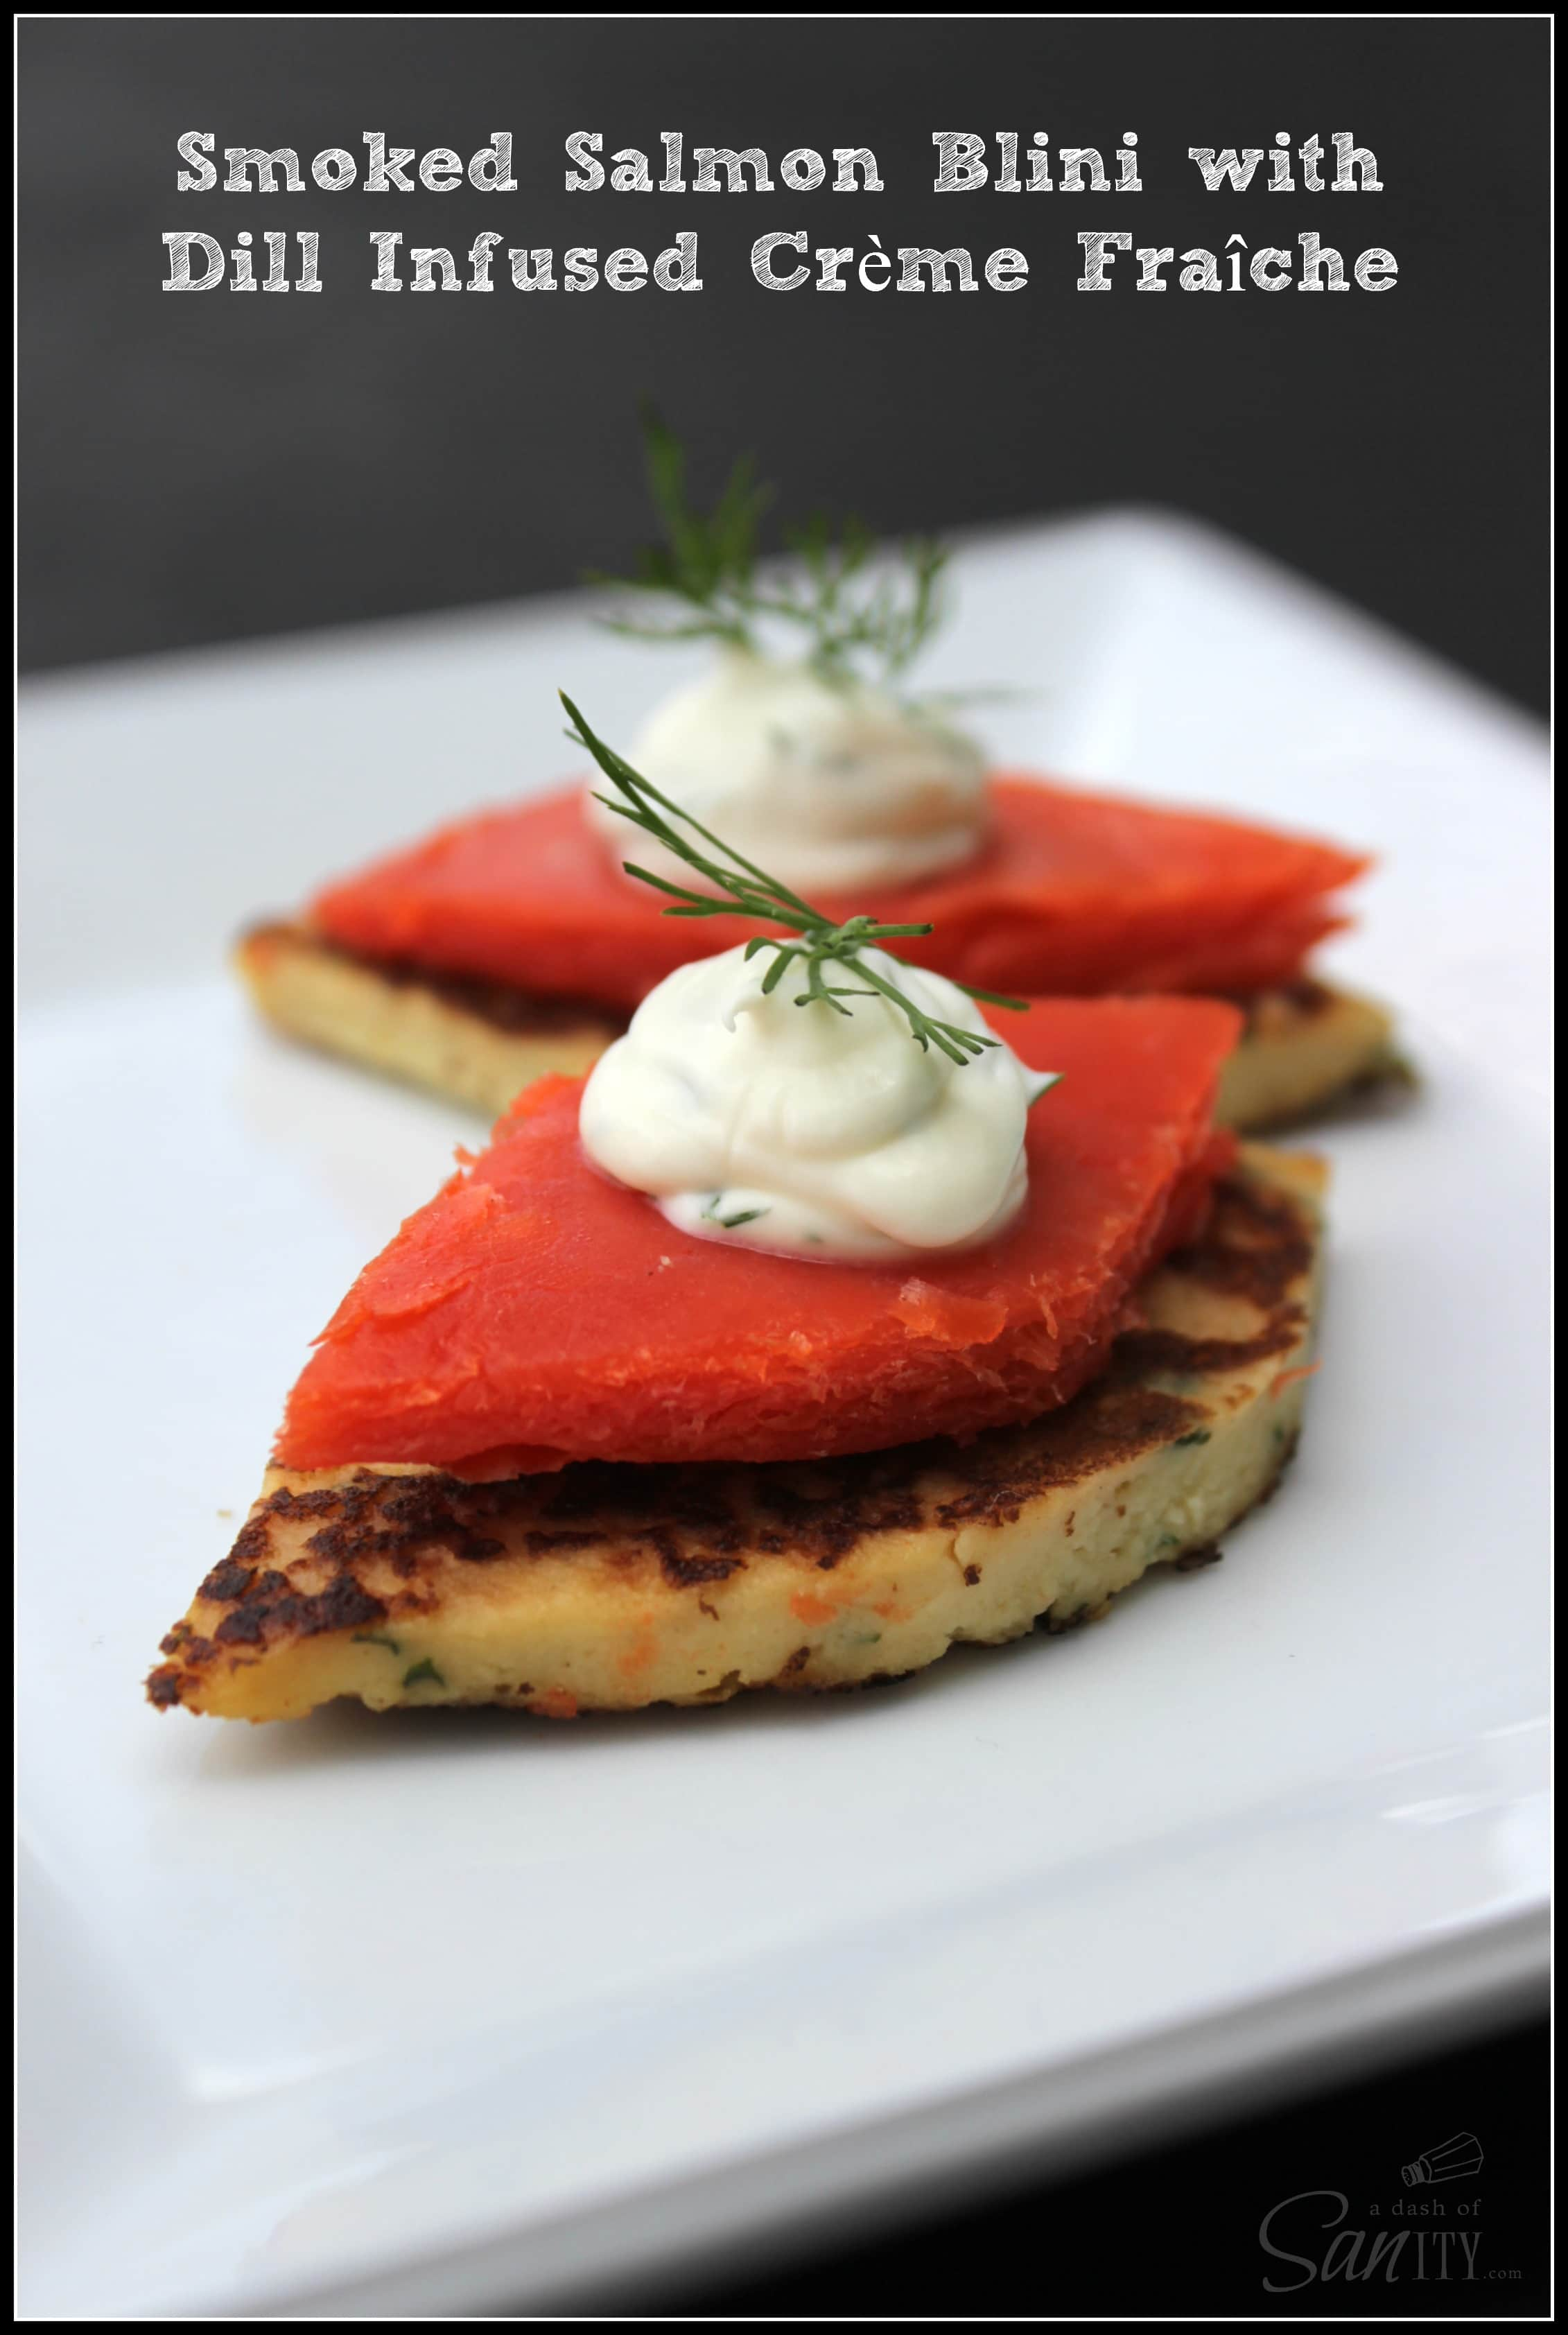 Homemade Blinis with Smoked Sockeye Salmon and Dill Infused Crème Fraiche